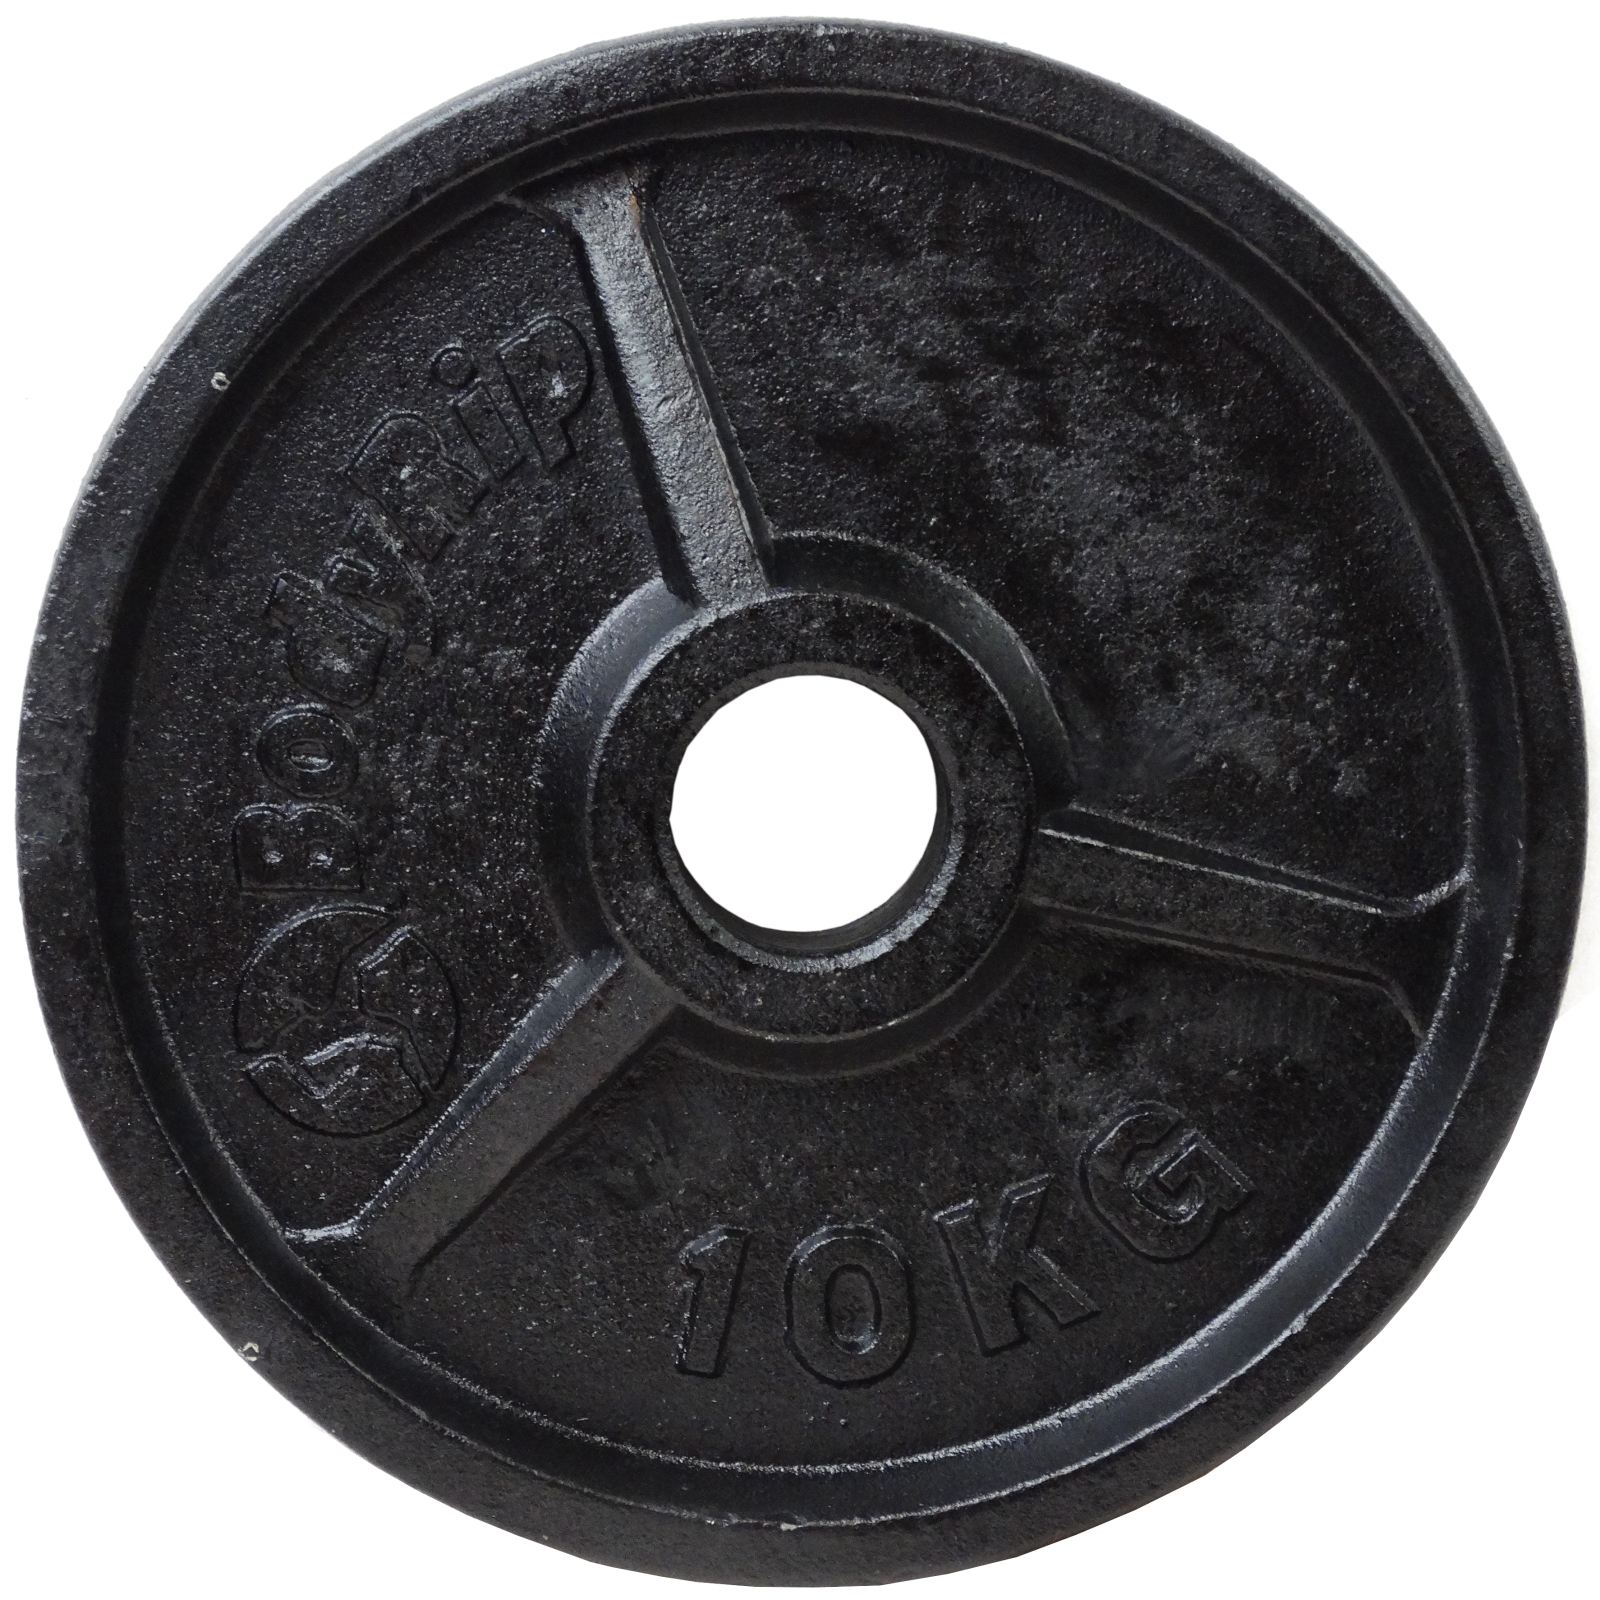 Dumbbell Set A Vendre: BodyRip Olympic Weight Plates 1.25-25Kg Discs Weights